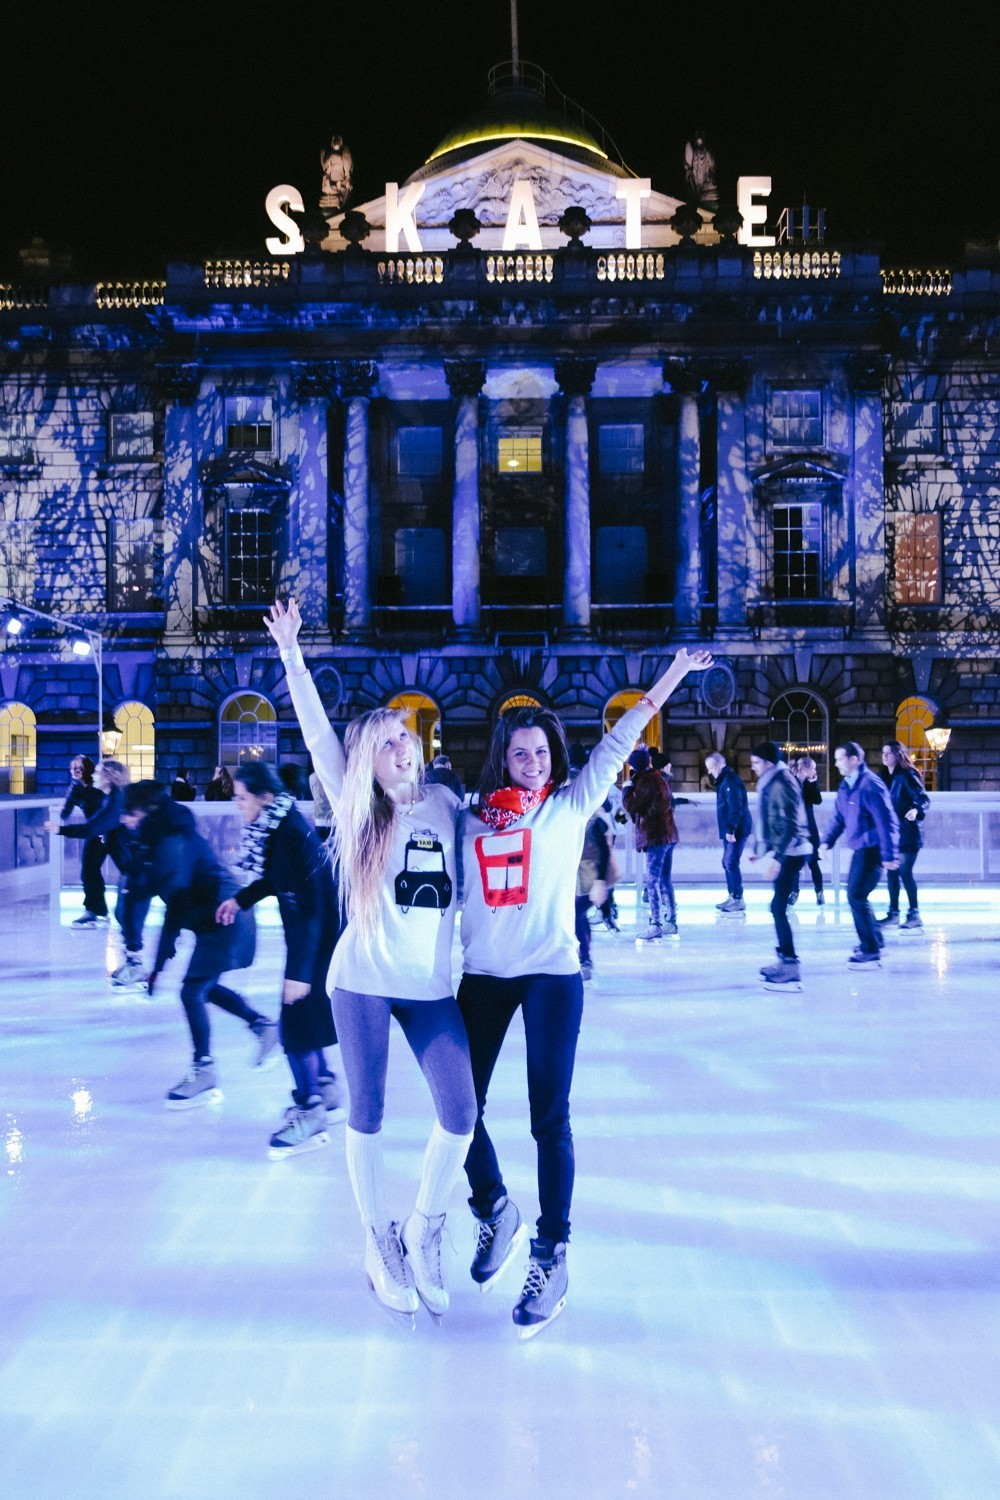 Christmas skating in London